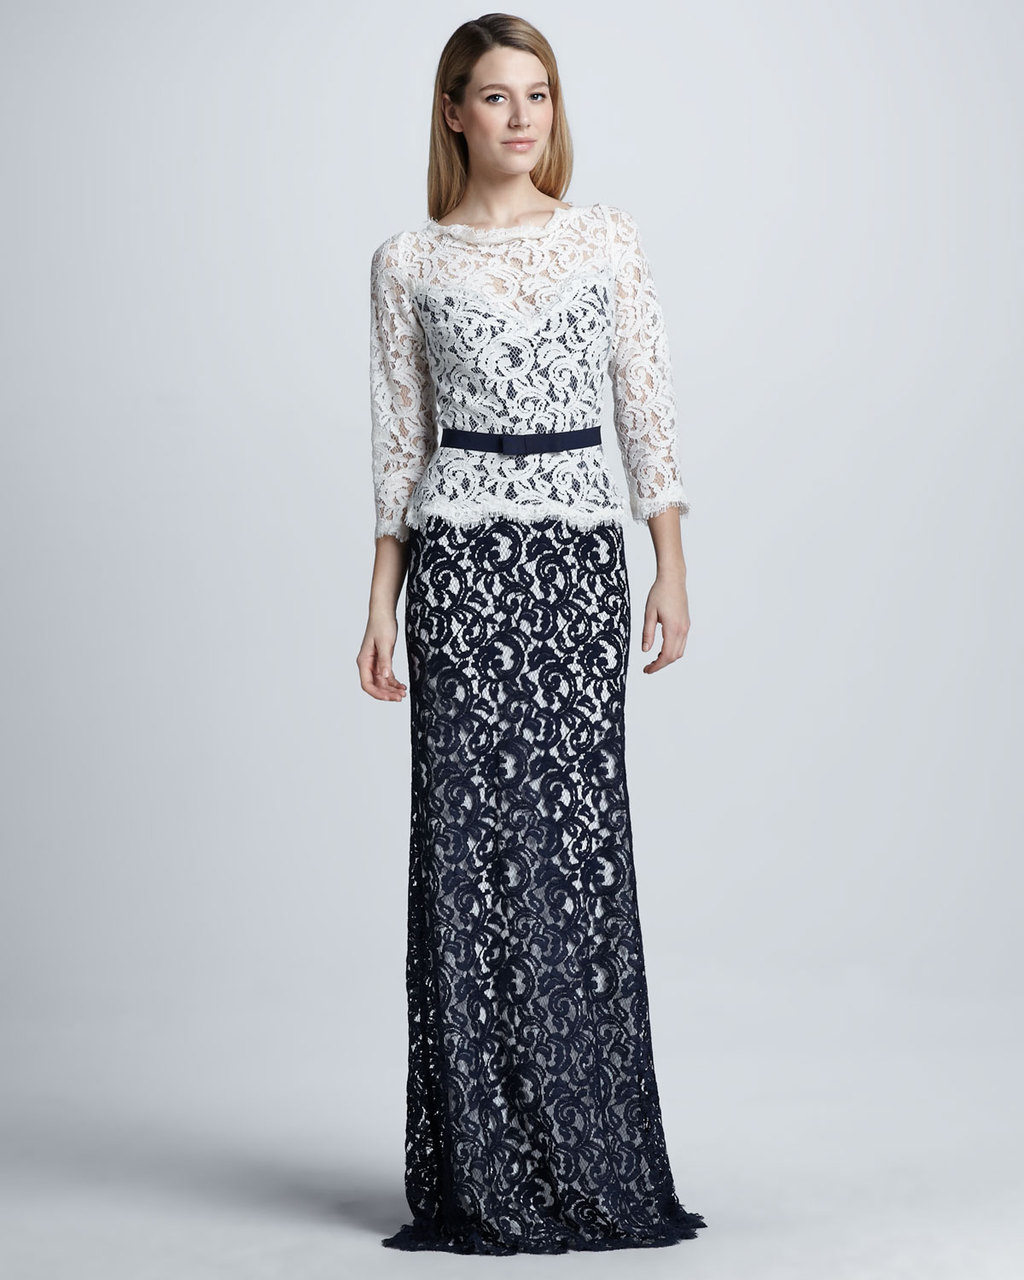 Navy-and-white-lace-mob-gown-for-weddings.full